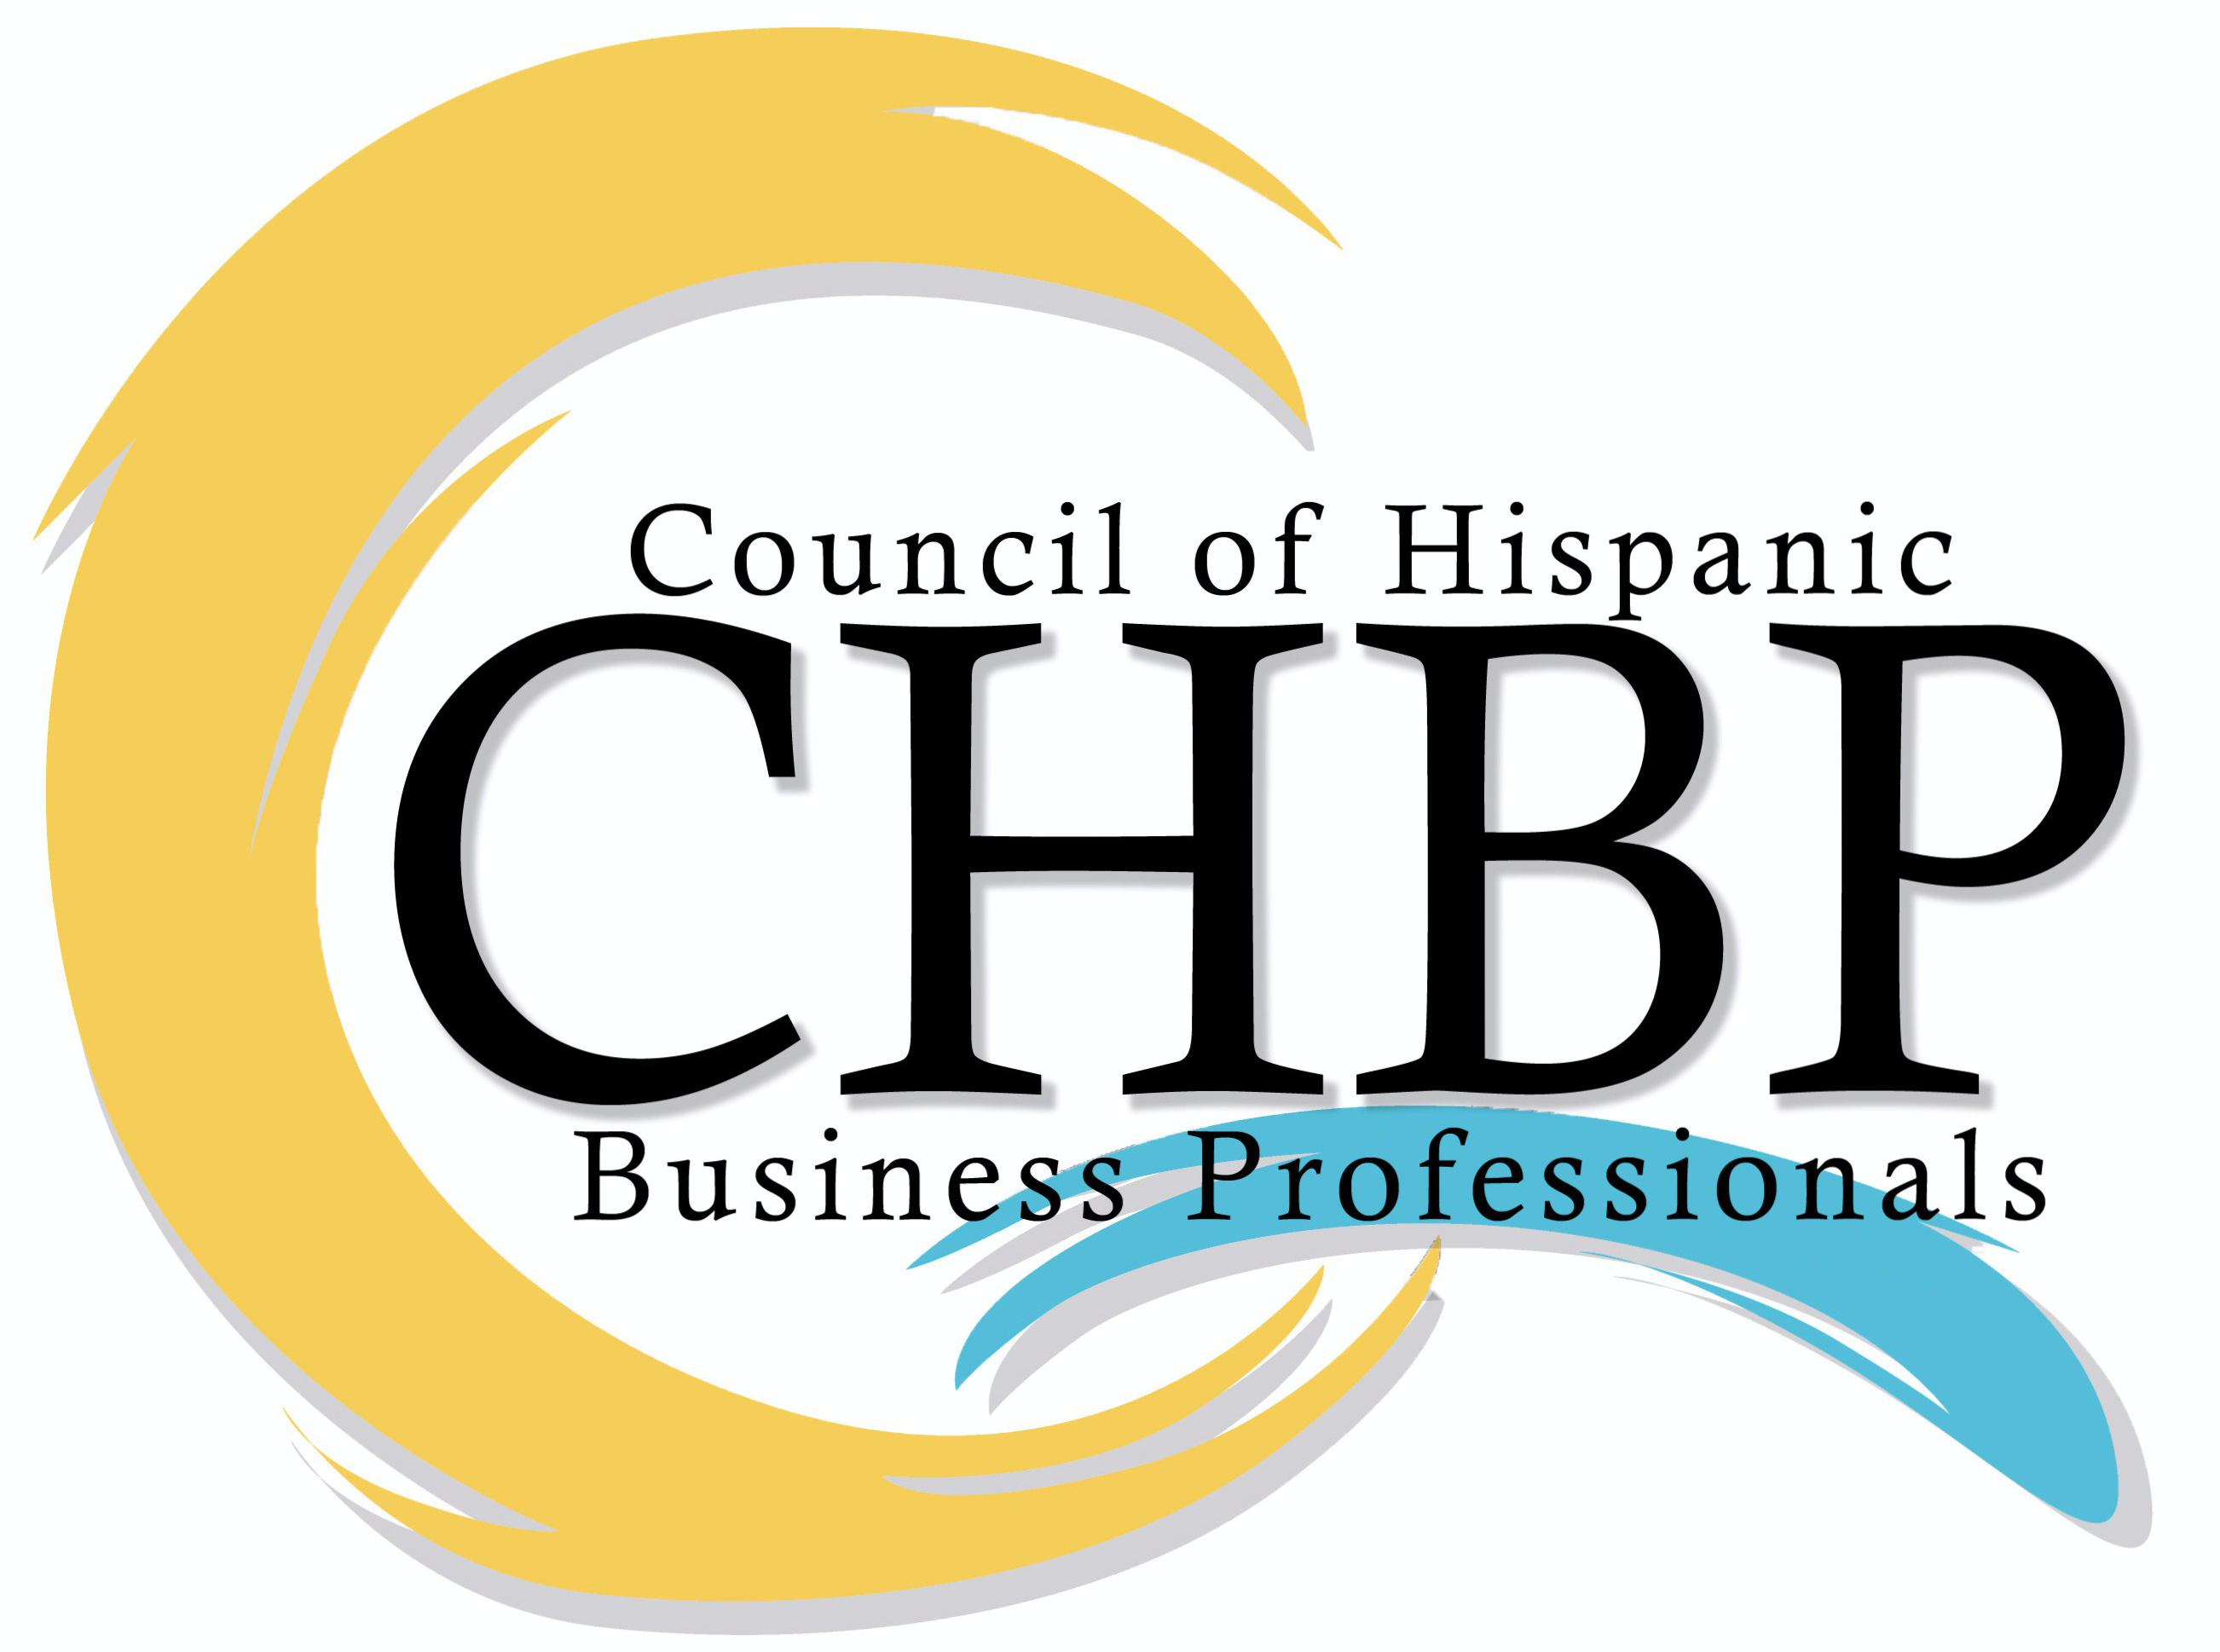 Council of Hispanics Business Professionals